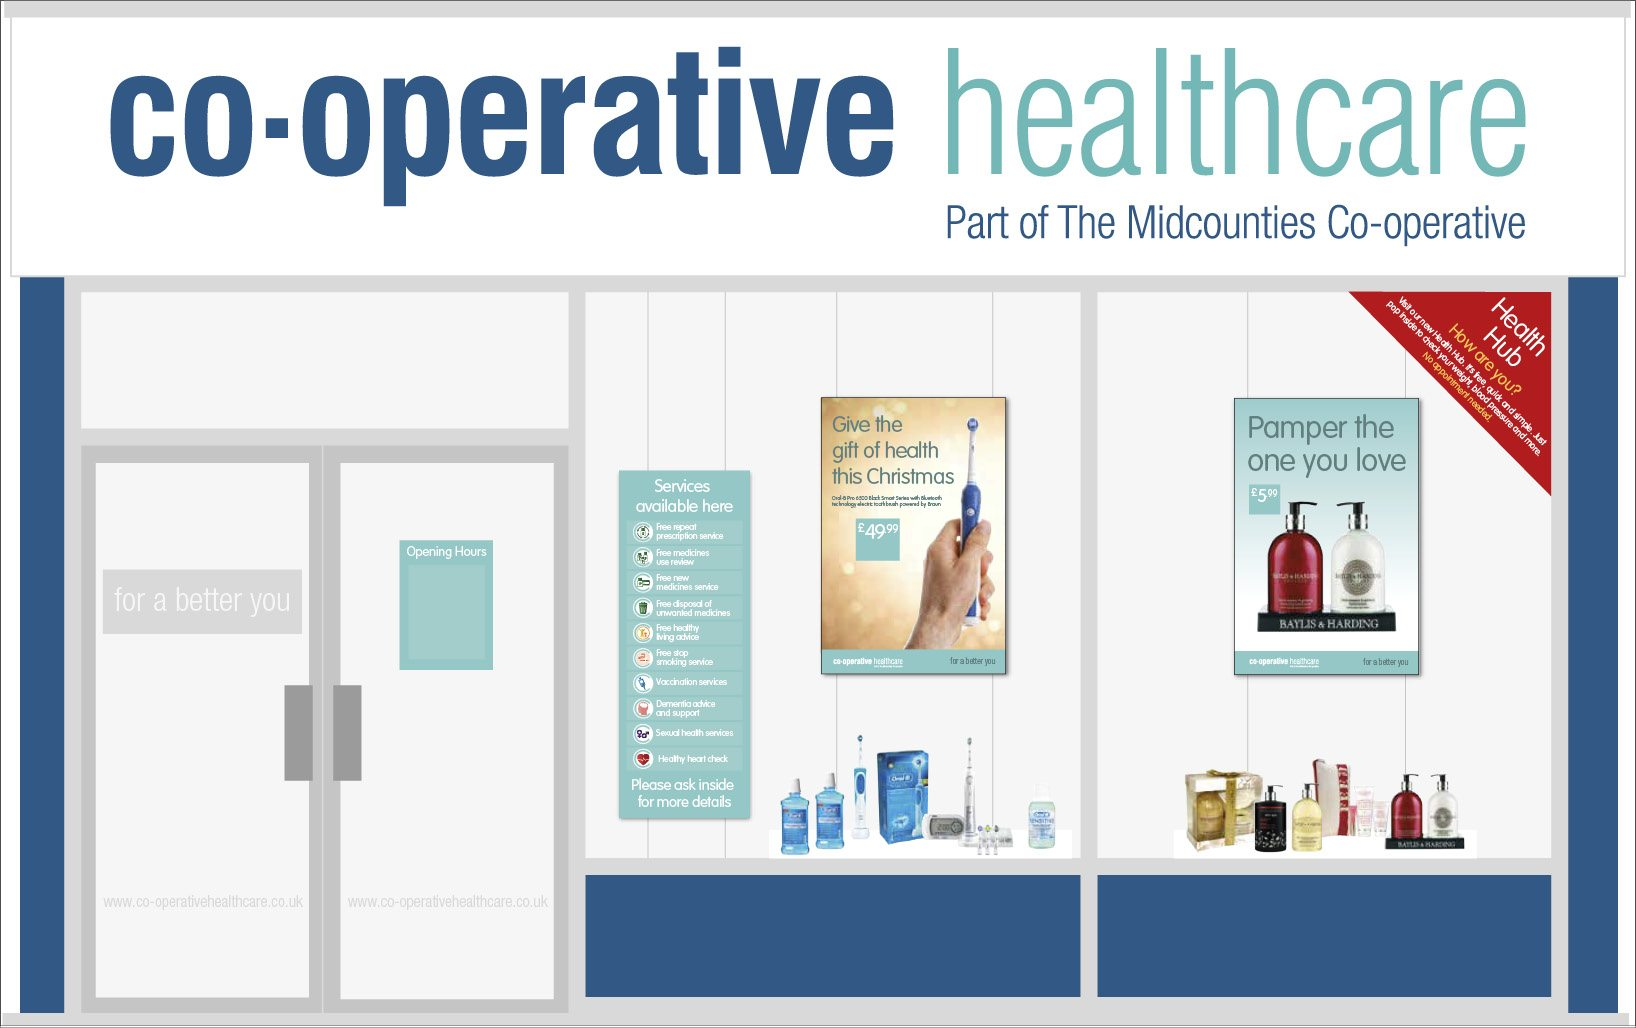 The Co-operative design concepts